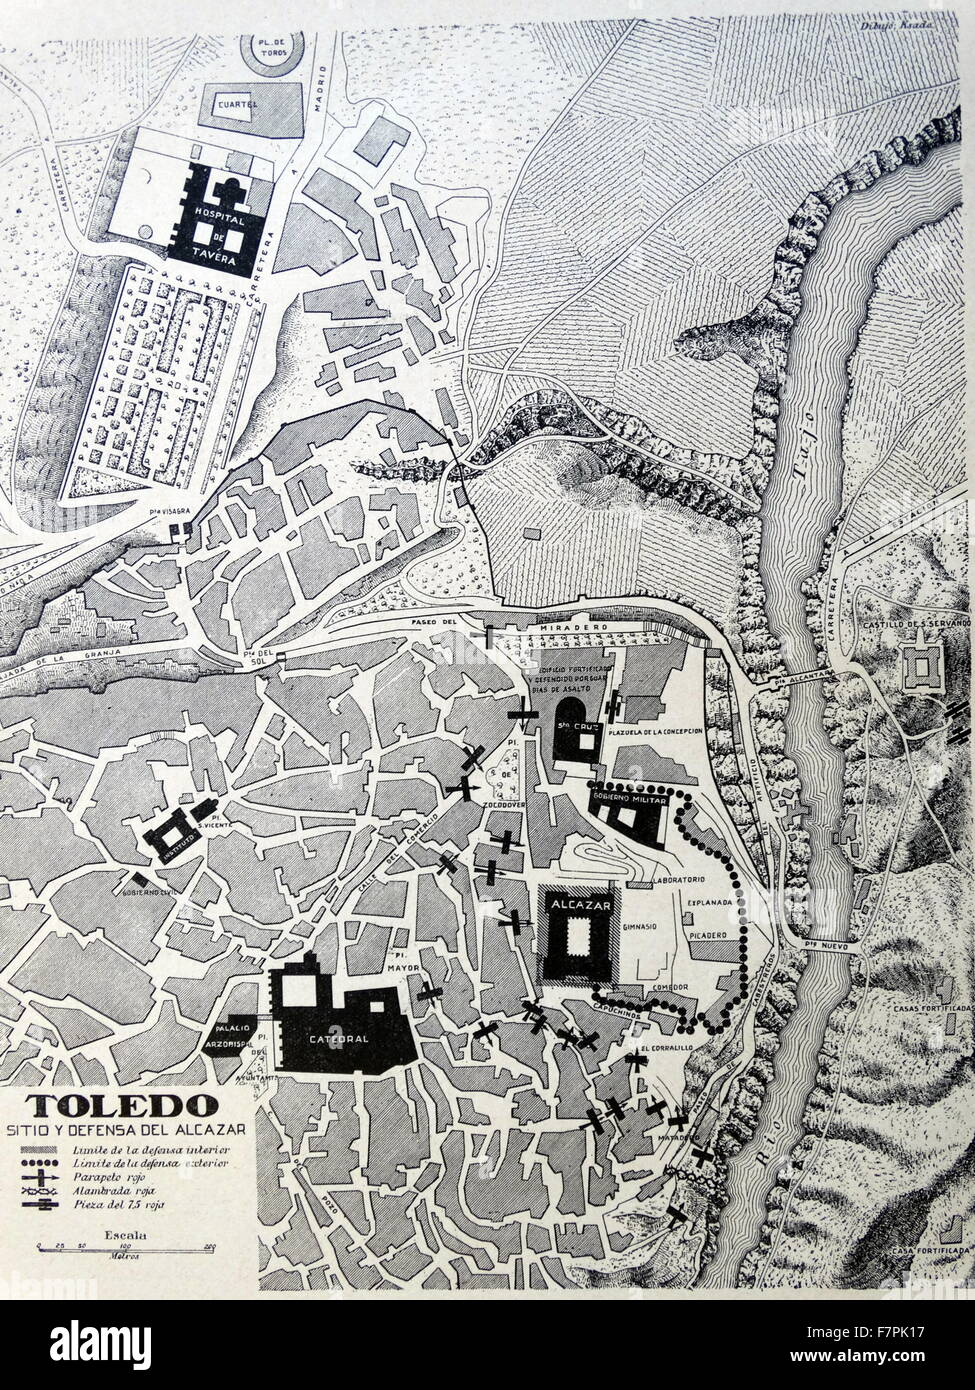 illustrated map of Toledo, Spain. Dated 1937 - Stock Image